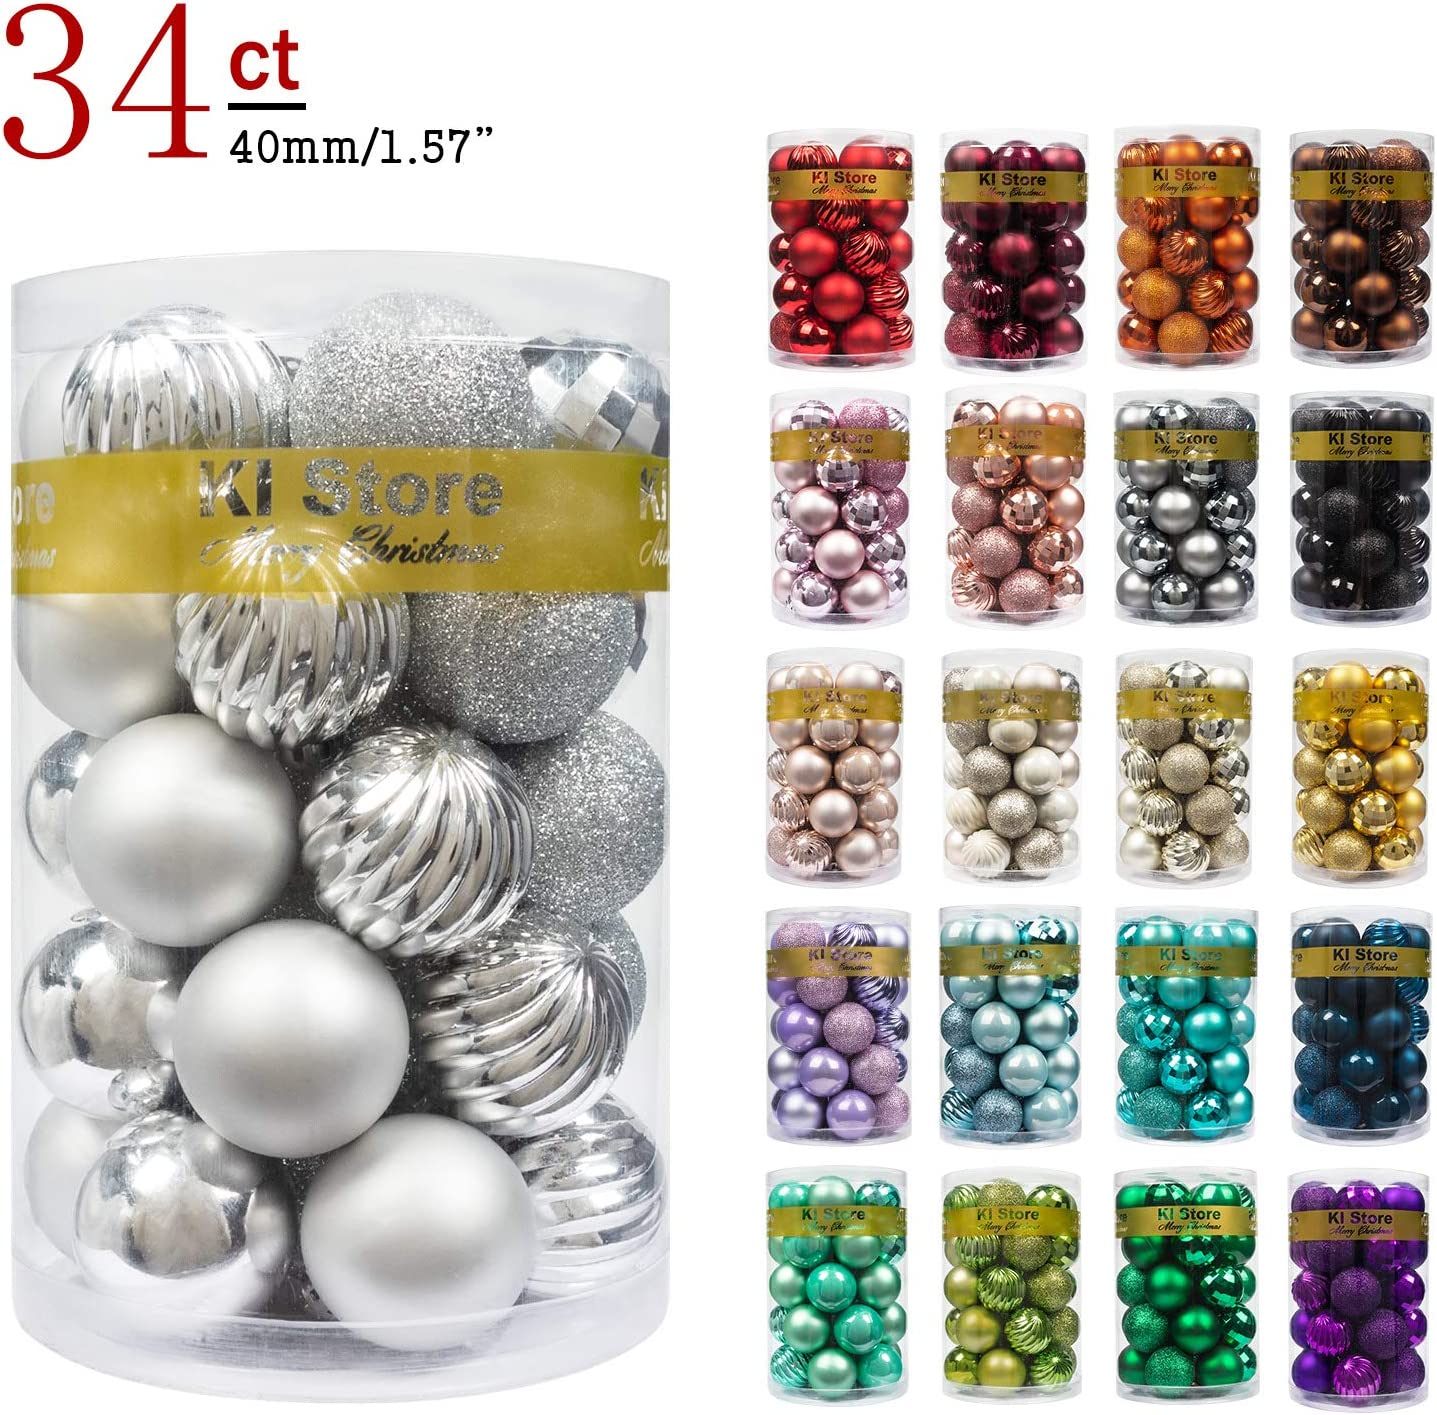 """KI Store 34ct Christmas Ball Ornaments 1.57"""" Small Shatterproof Christmas Decorations Tree Balls for Holiday Wedding Party Decoration Tree Ornaments Hooks Included (40mm Silver)"""